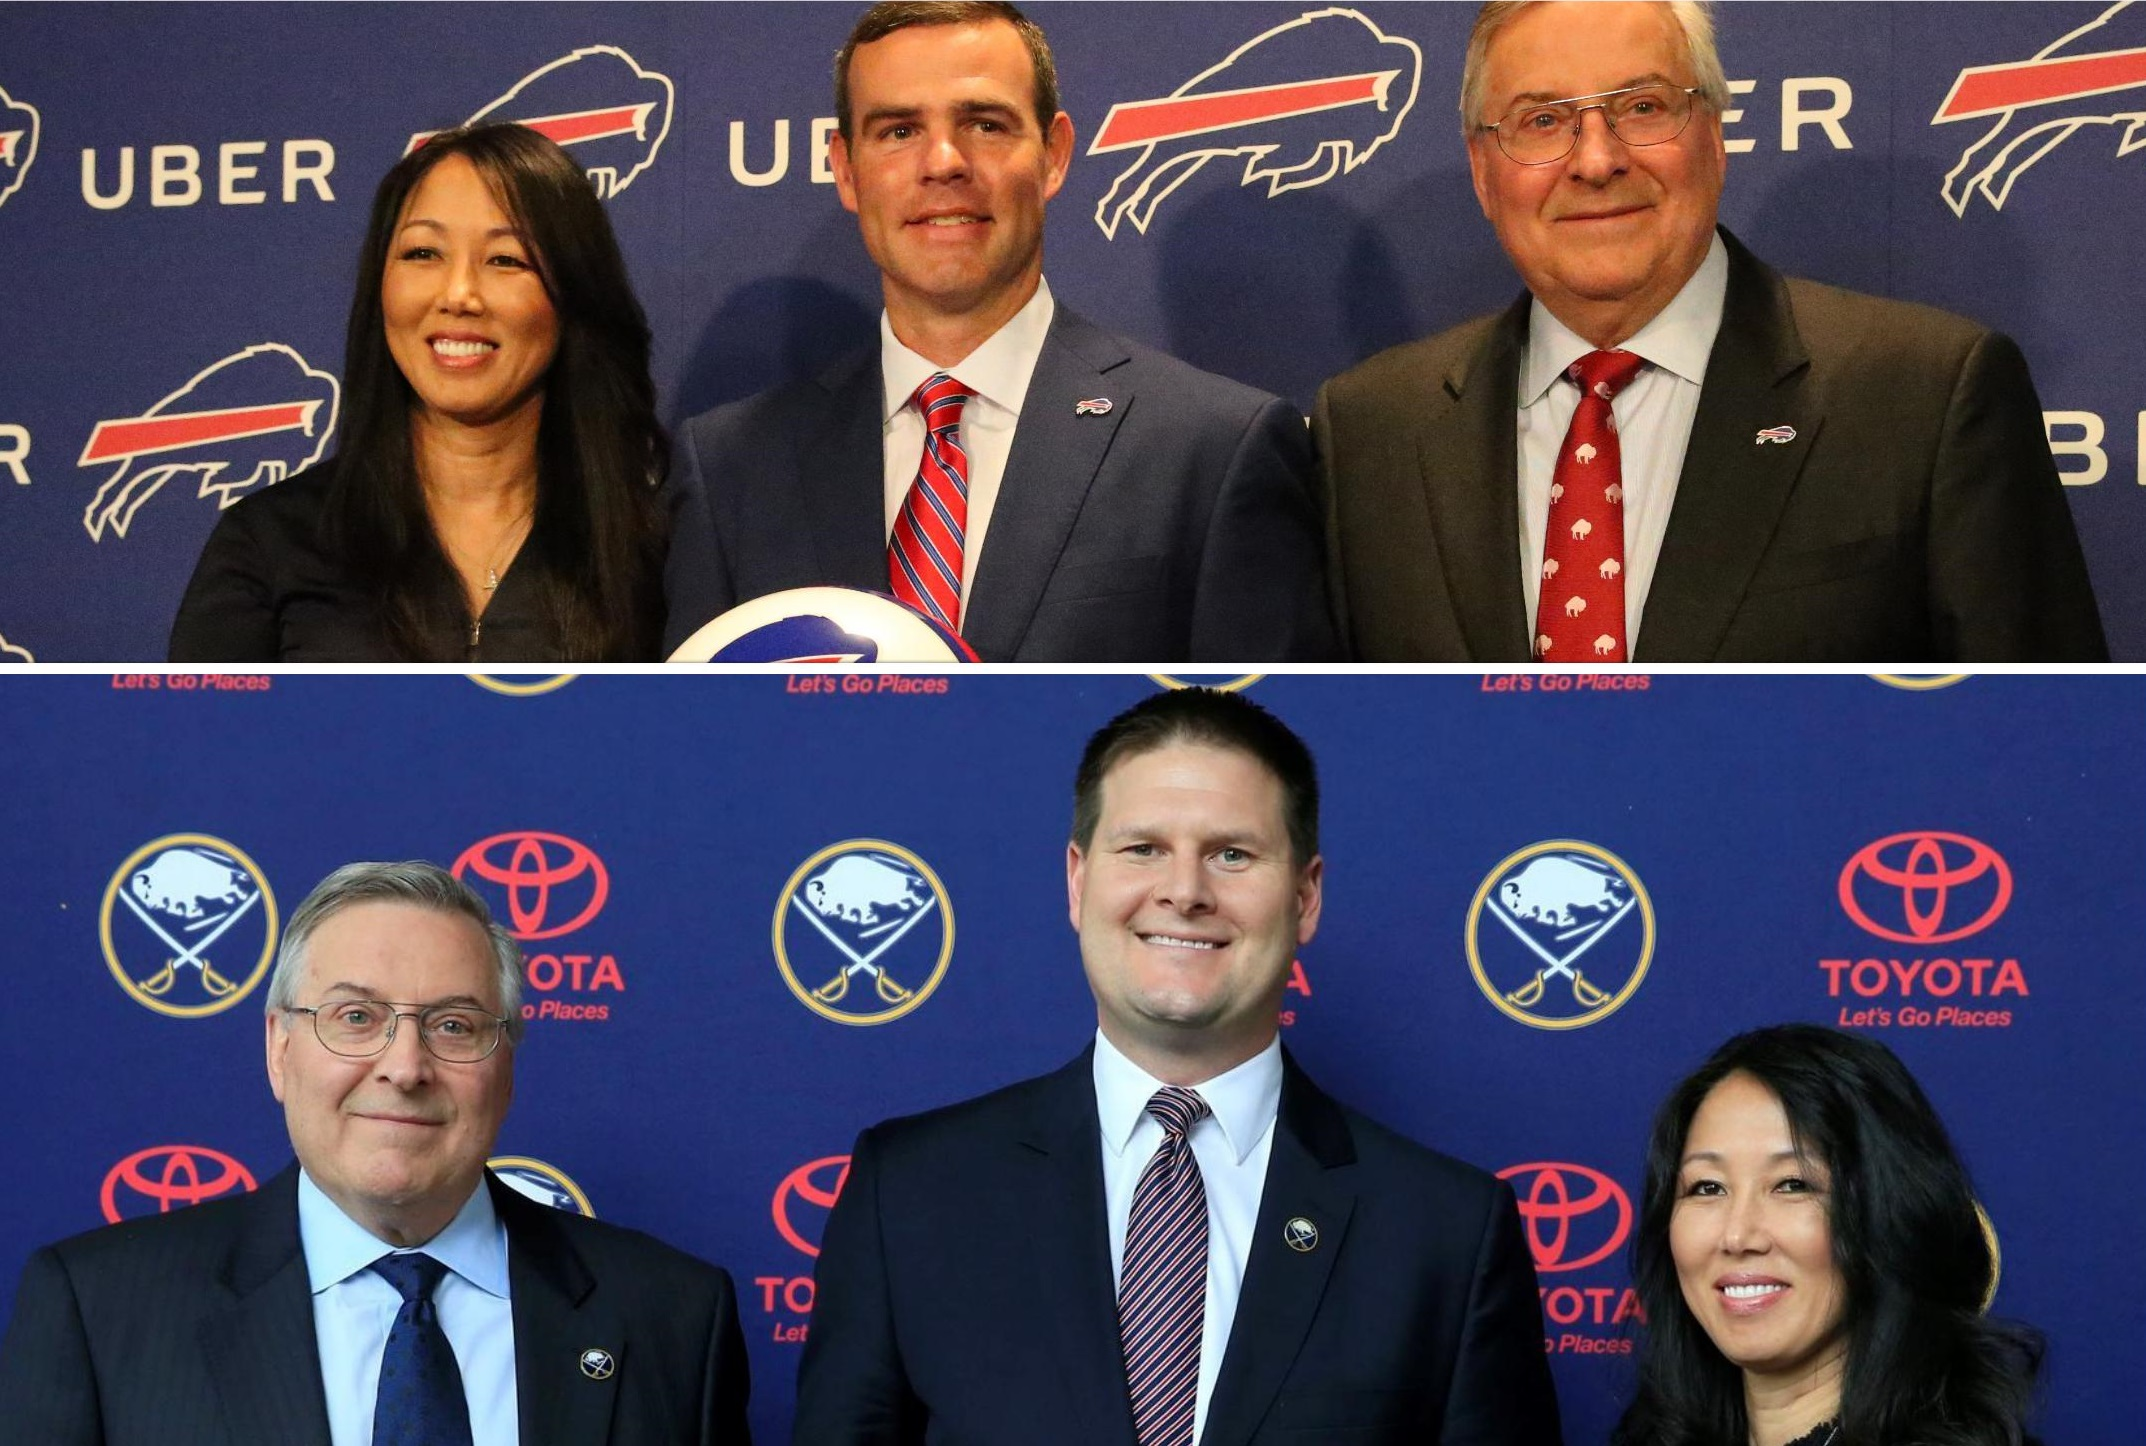 Jerry Sullivan's buddy Rex Carr has liked what he's seen with the recent Bills and Sabres GM hires. (James P. McCoy/Buffalo News, top; Harry Scull Jr./Buffalo News, bottom)